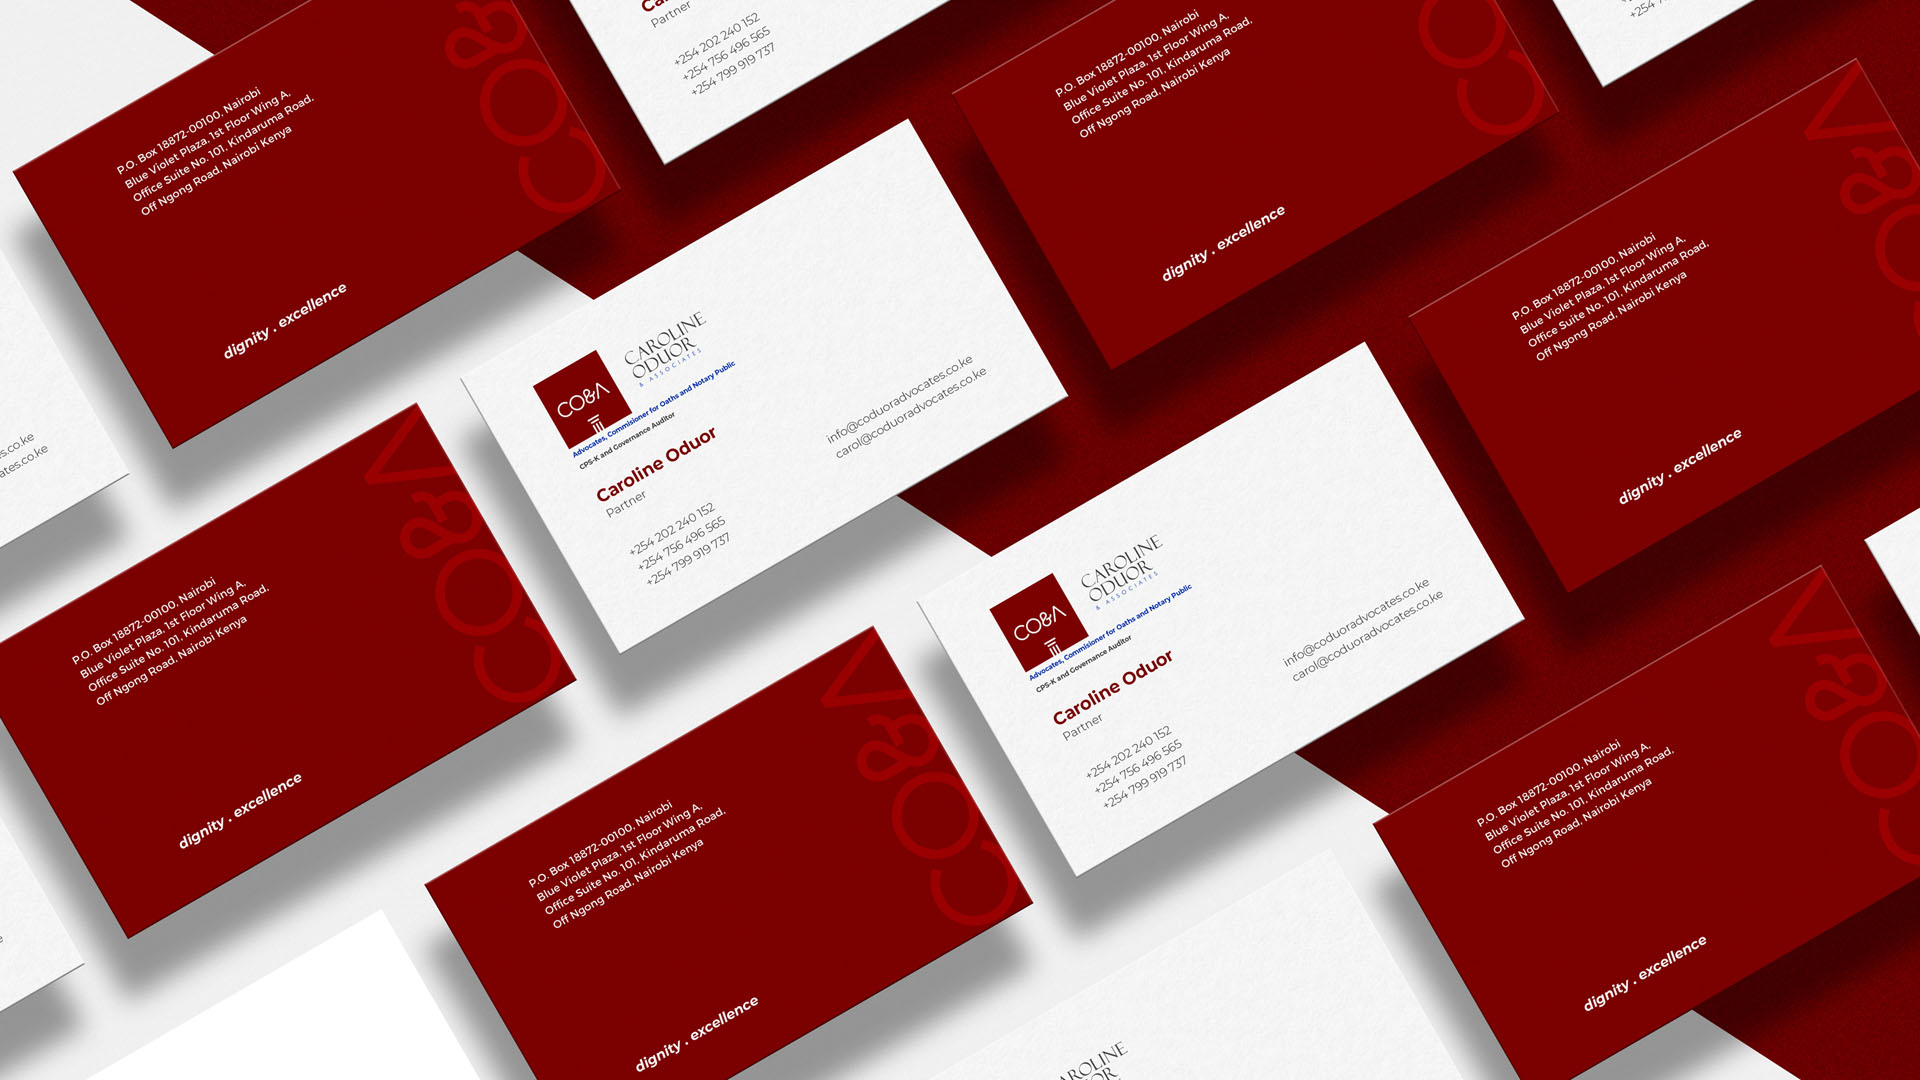 Caroline Oduor Business Cards Deigned by Jabari Creative Studios